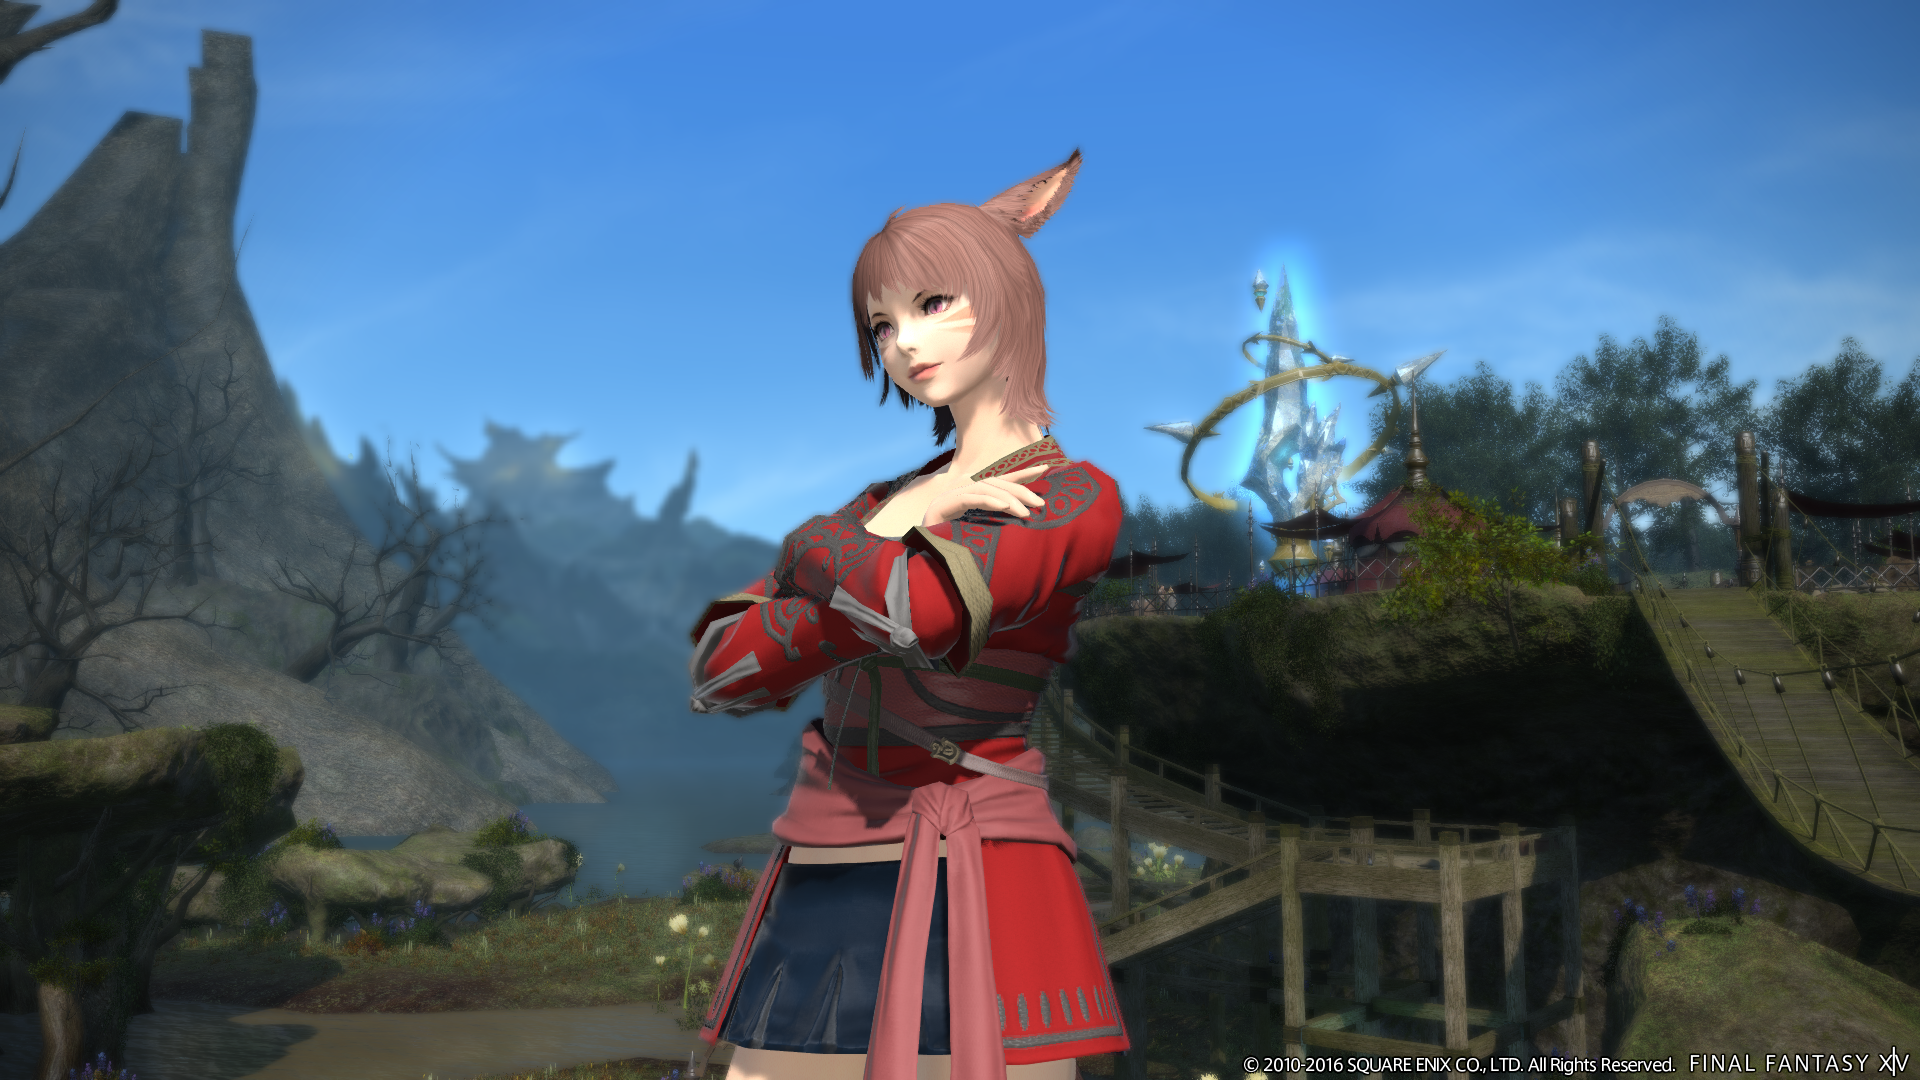 Final Fantasy Xiv Patch 3 3 Brings New Emotes Hairstyles Mounts